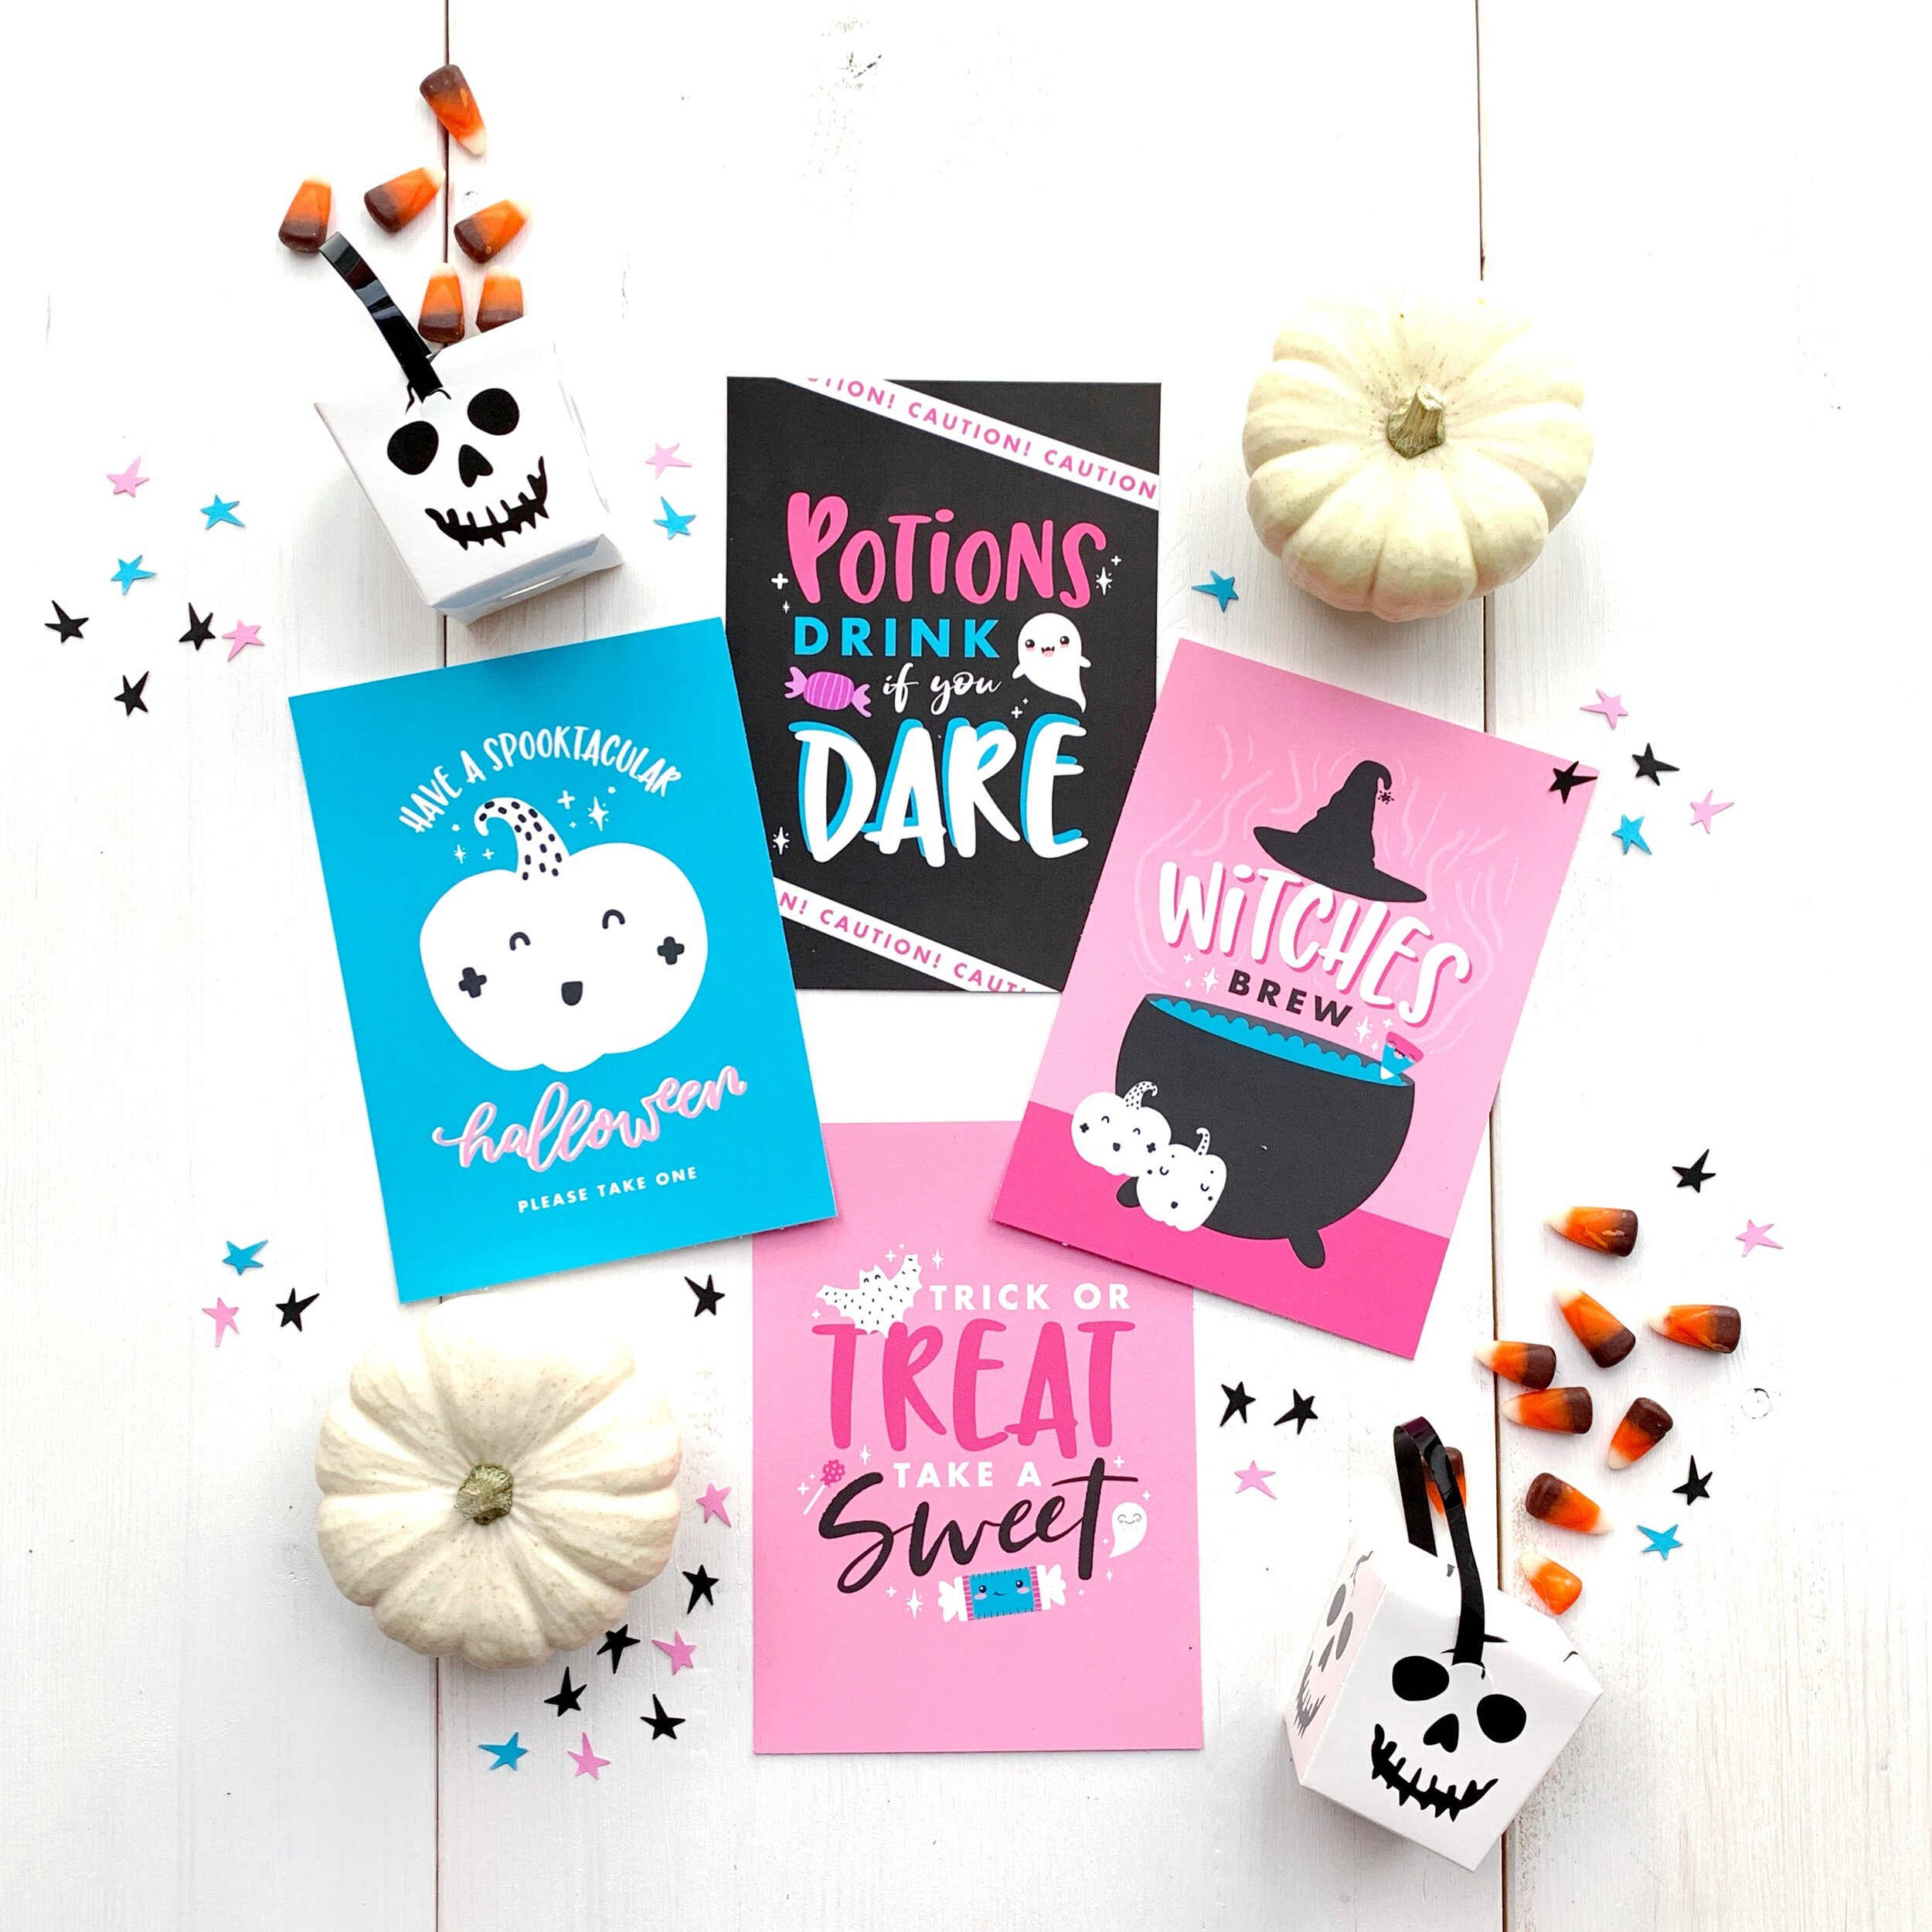 Girly Ghoul halloween party theme from MKKM Designs